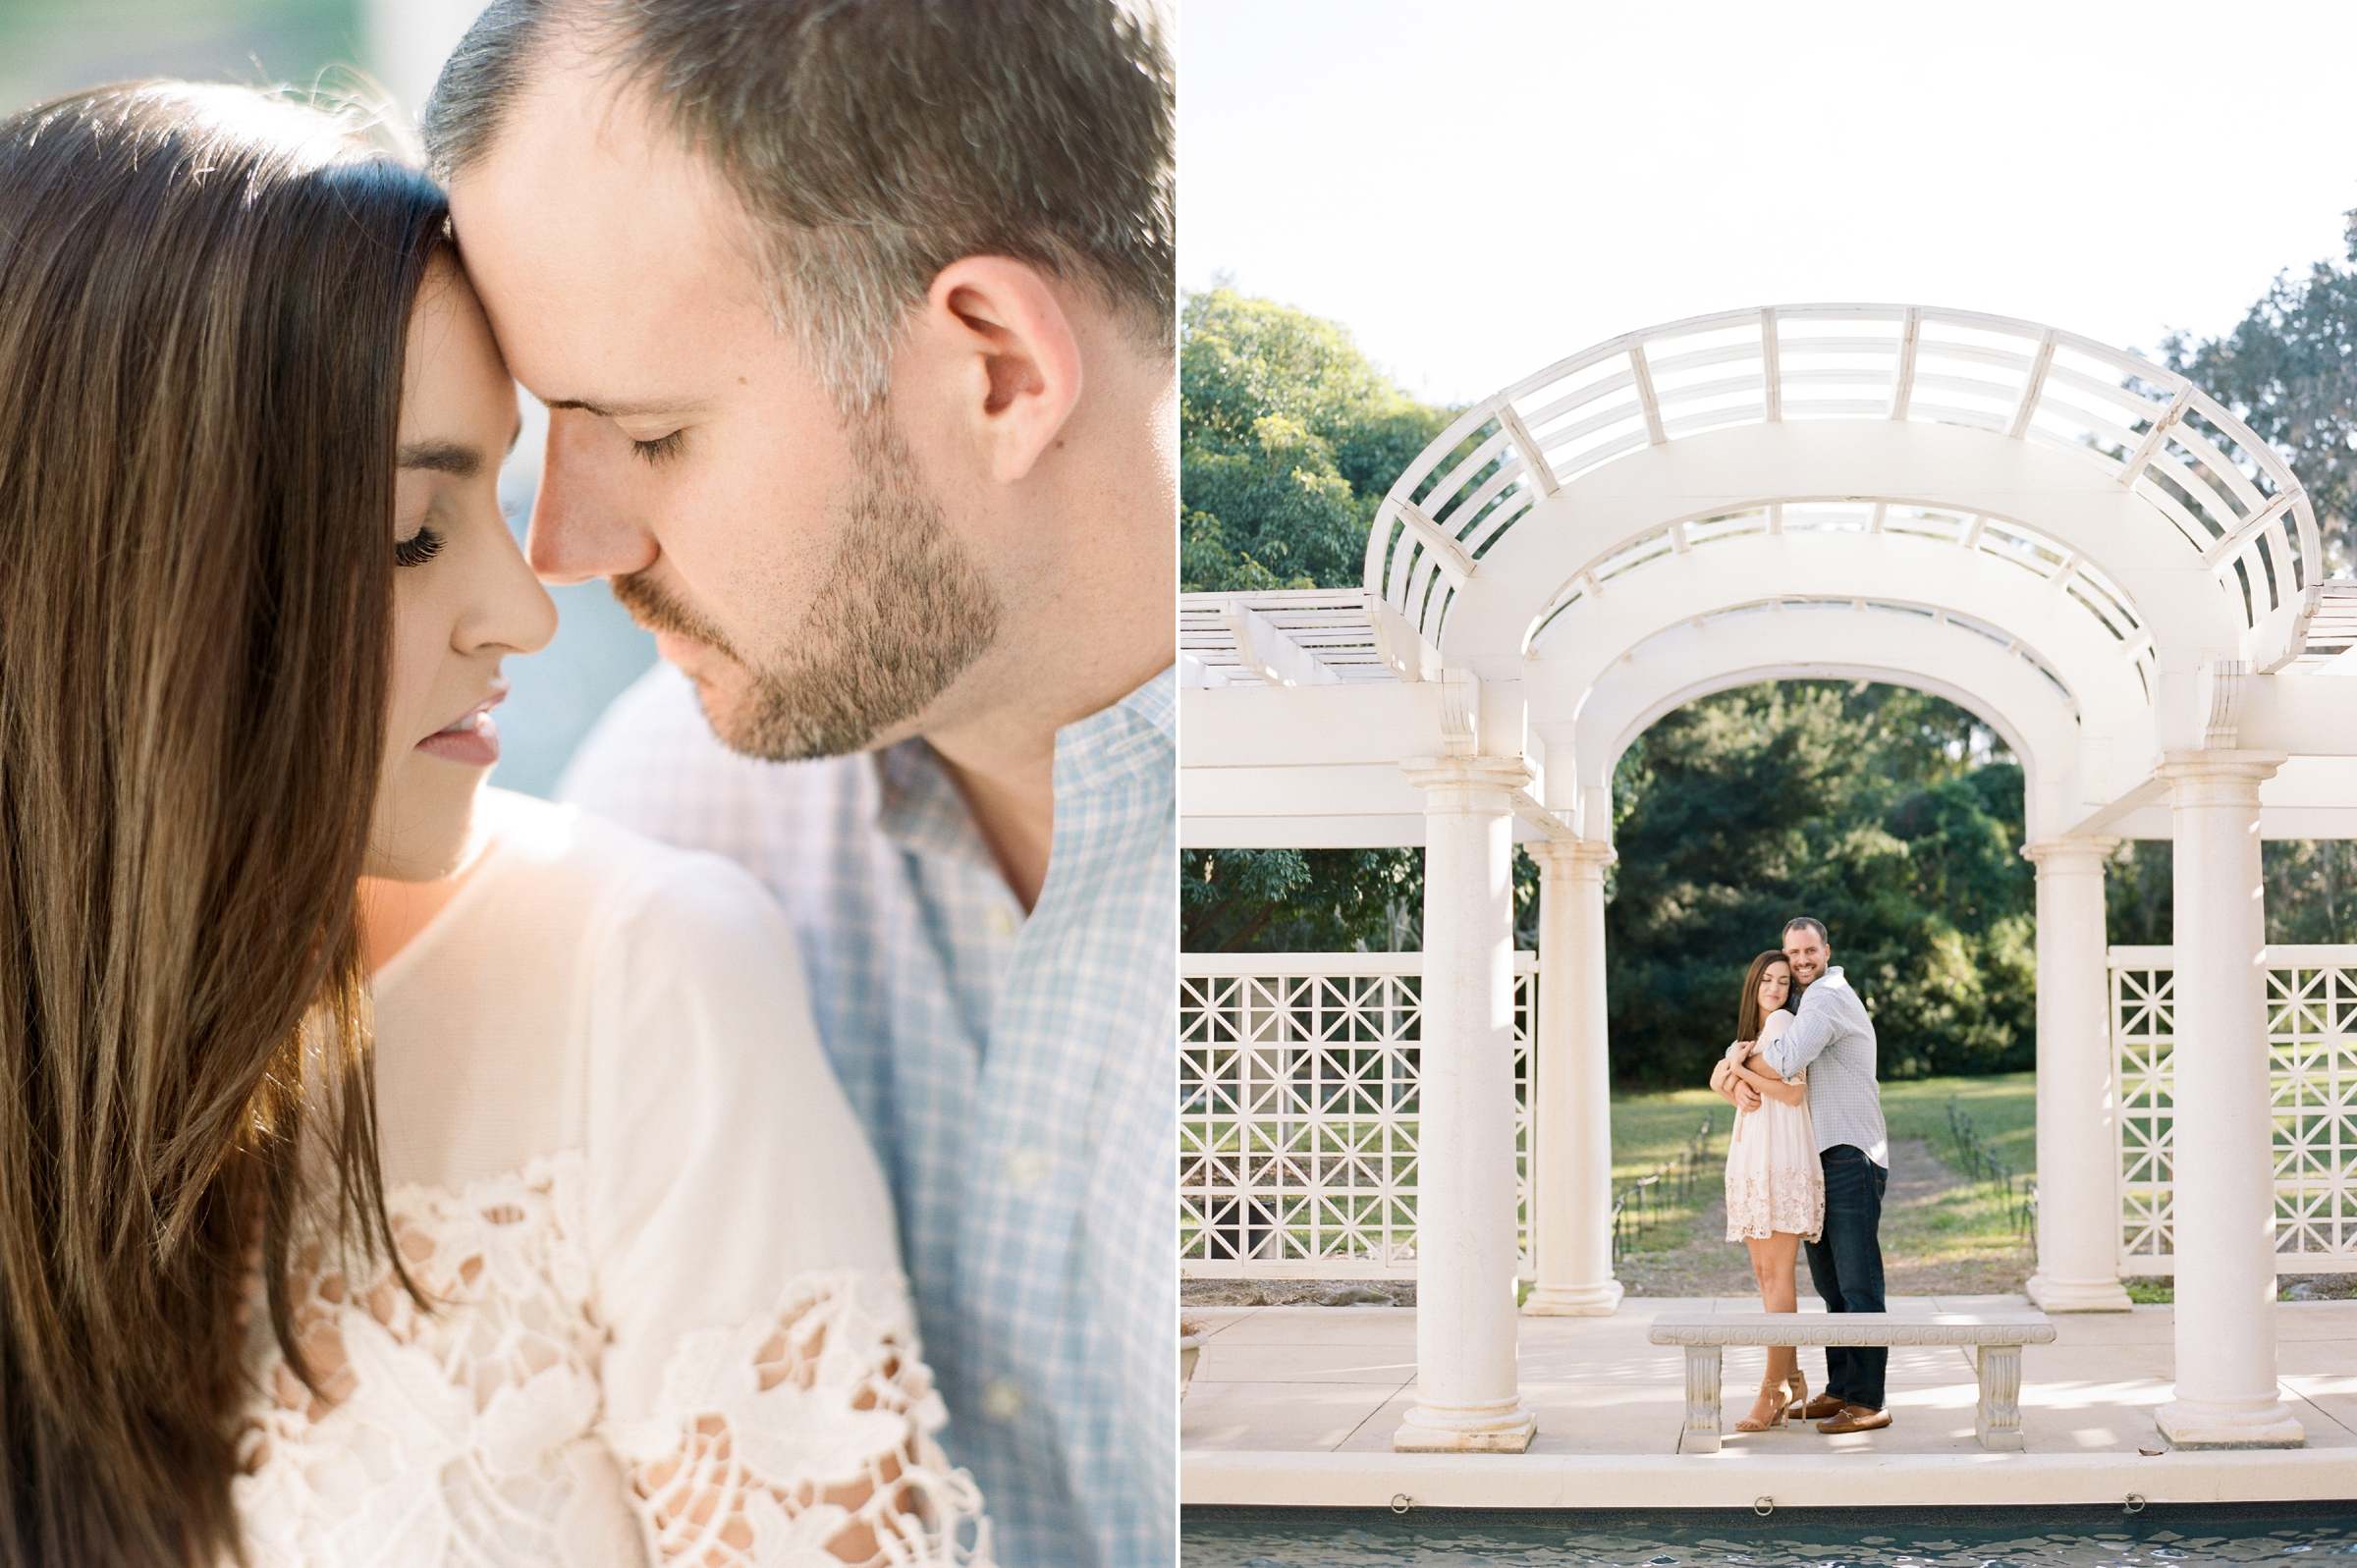 goodwood_museum_tallahassee_engagement_photographer_shannon_griffin_0010.jpg